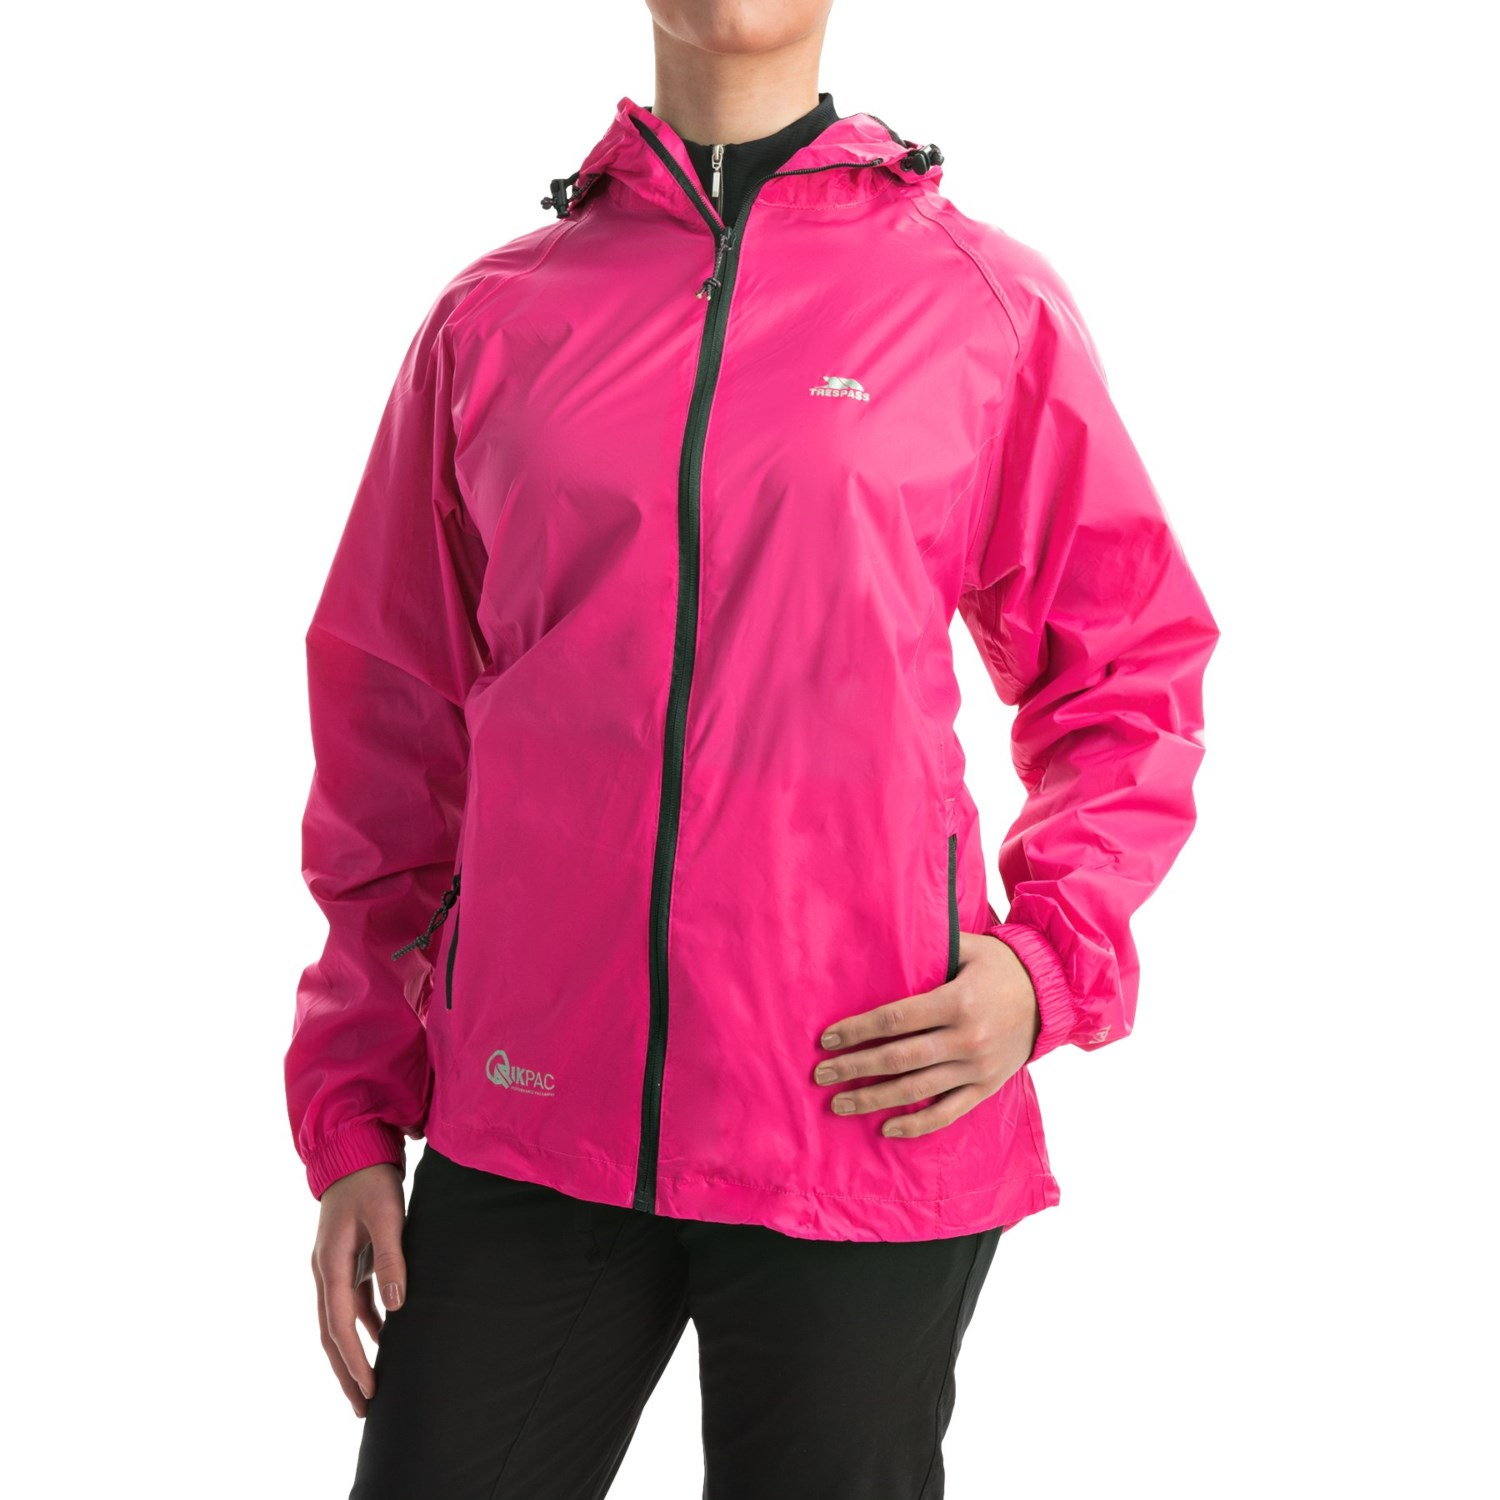 Womens trendy jackets